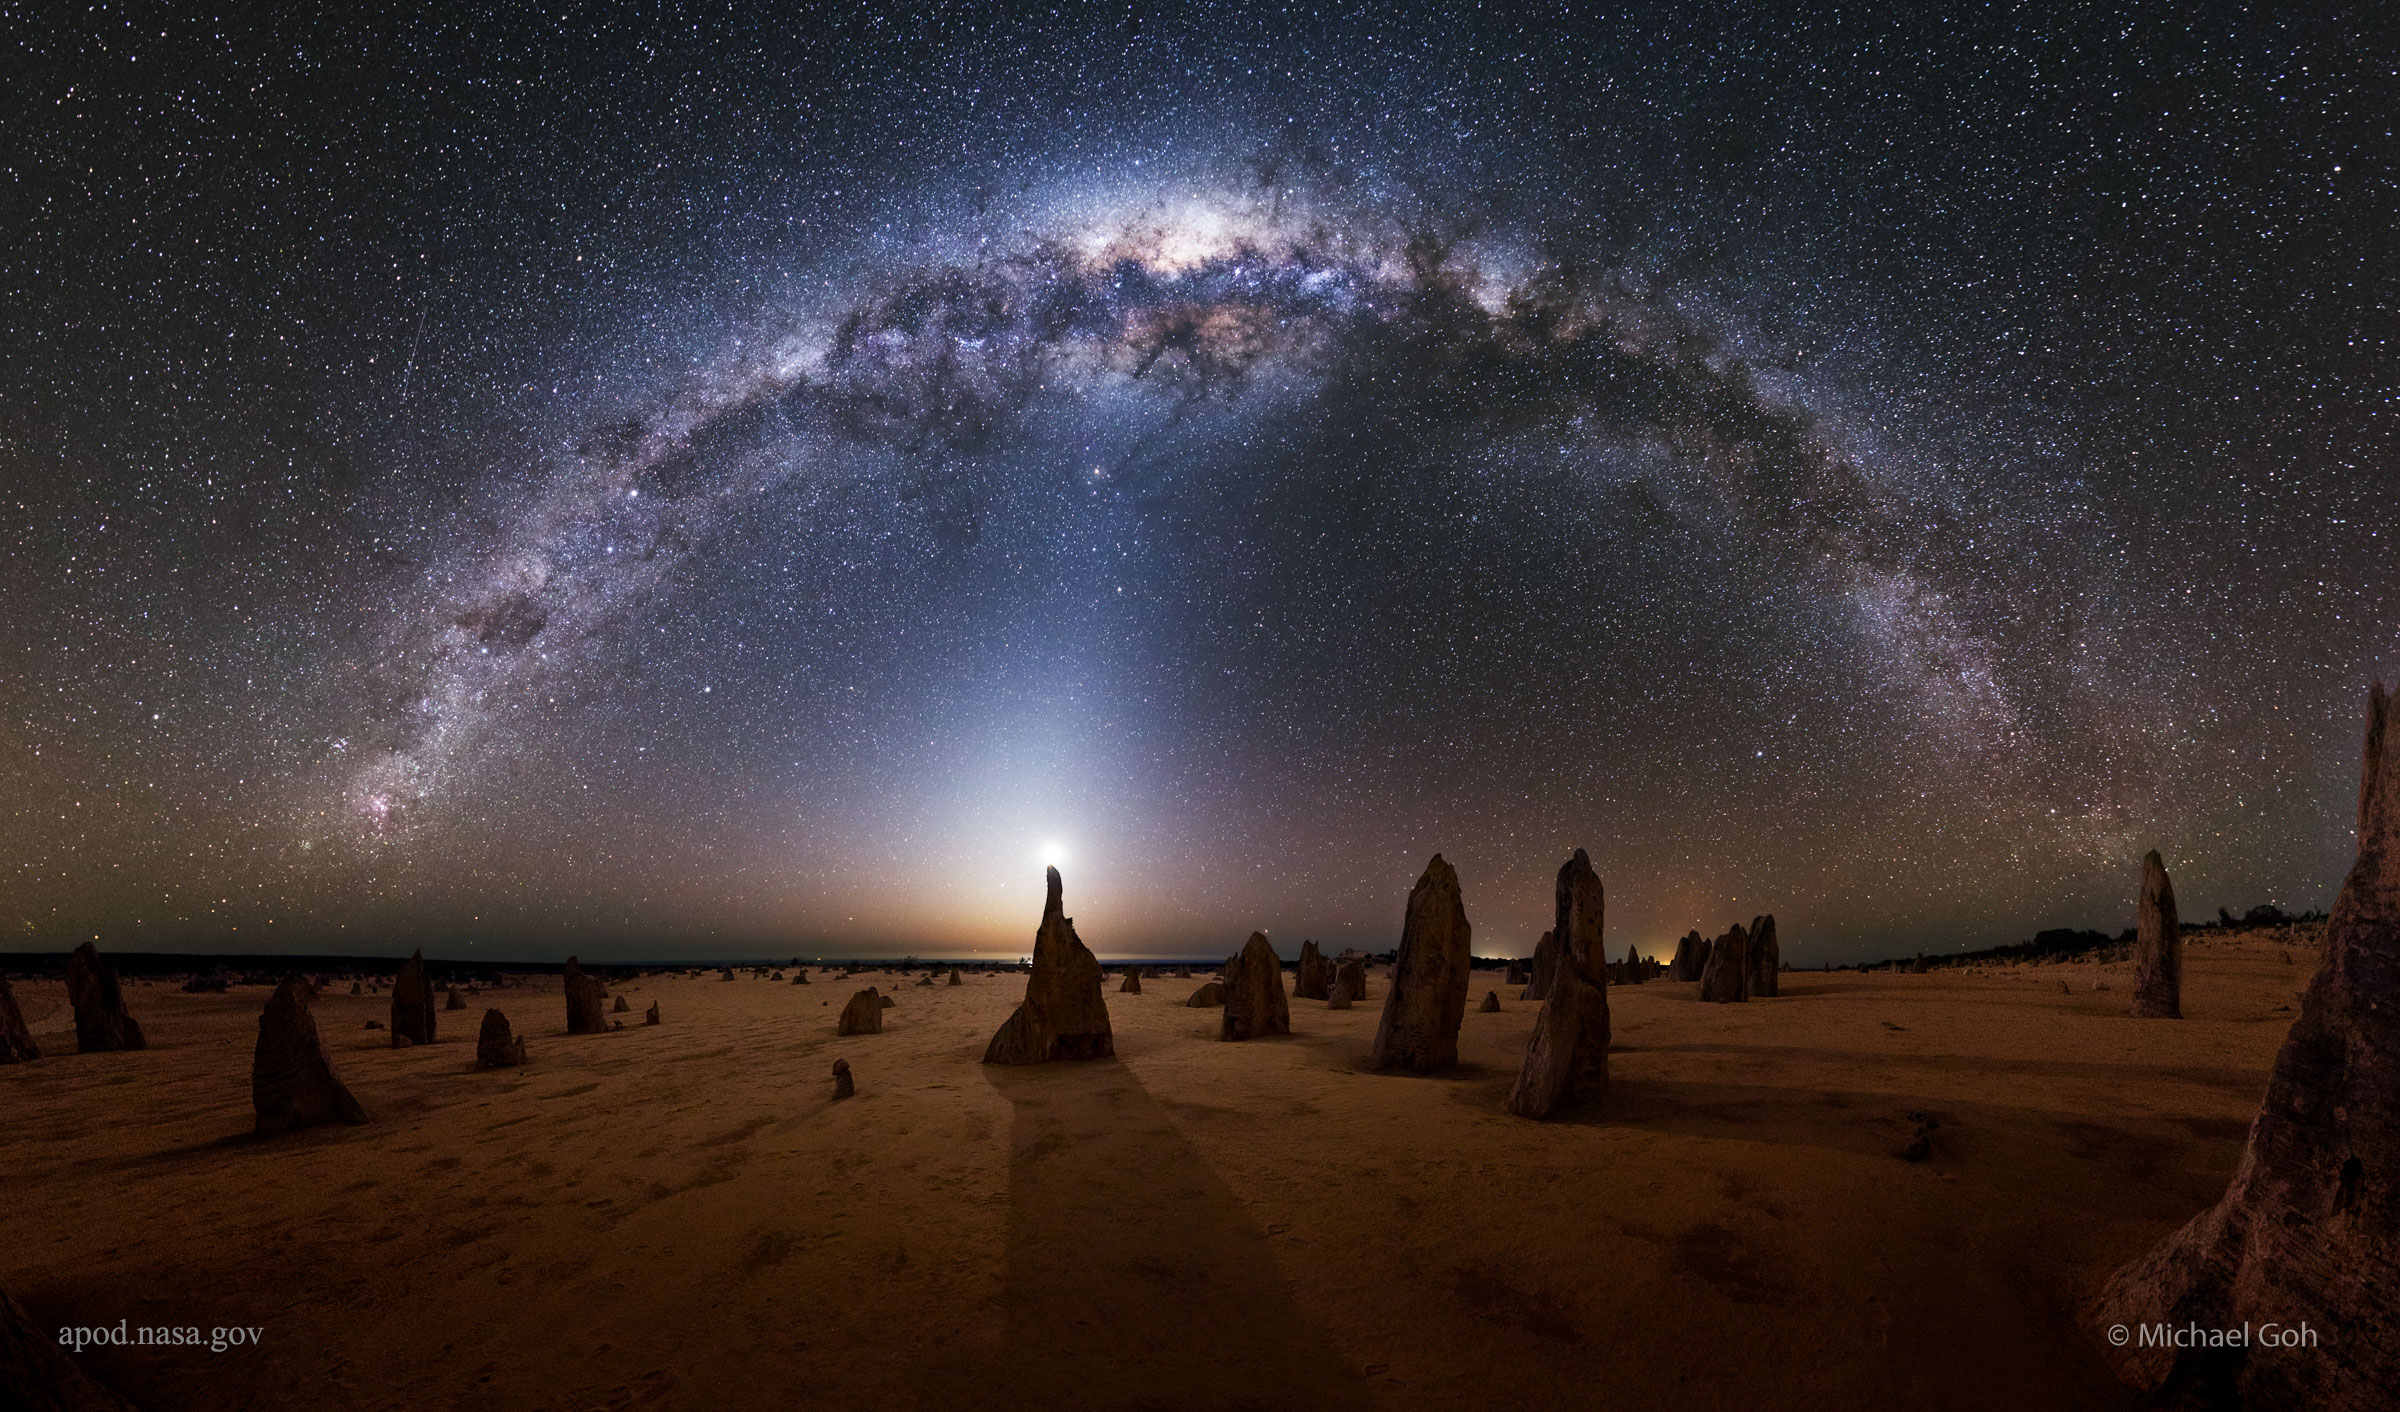 2016 February 17 - Milky Way over the Pinnacles in Australia